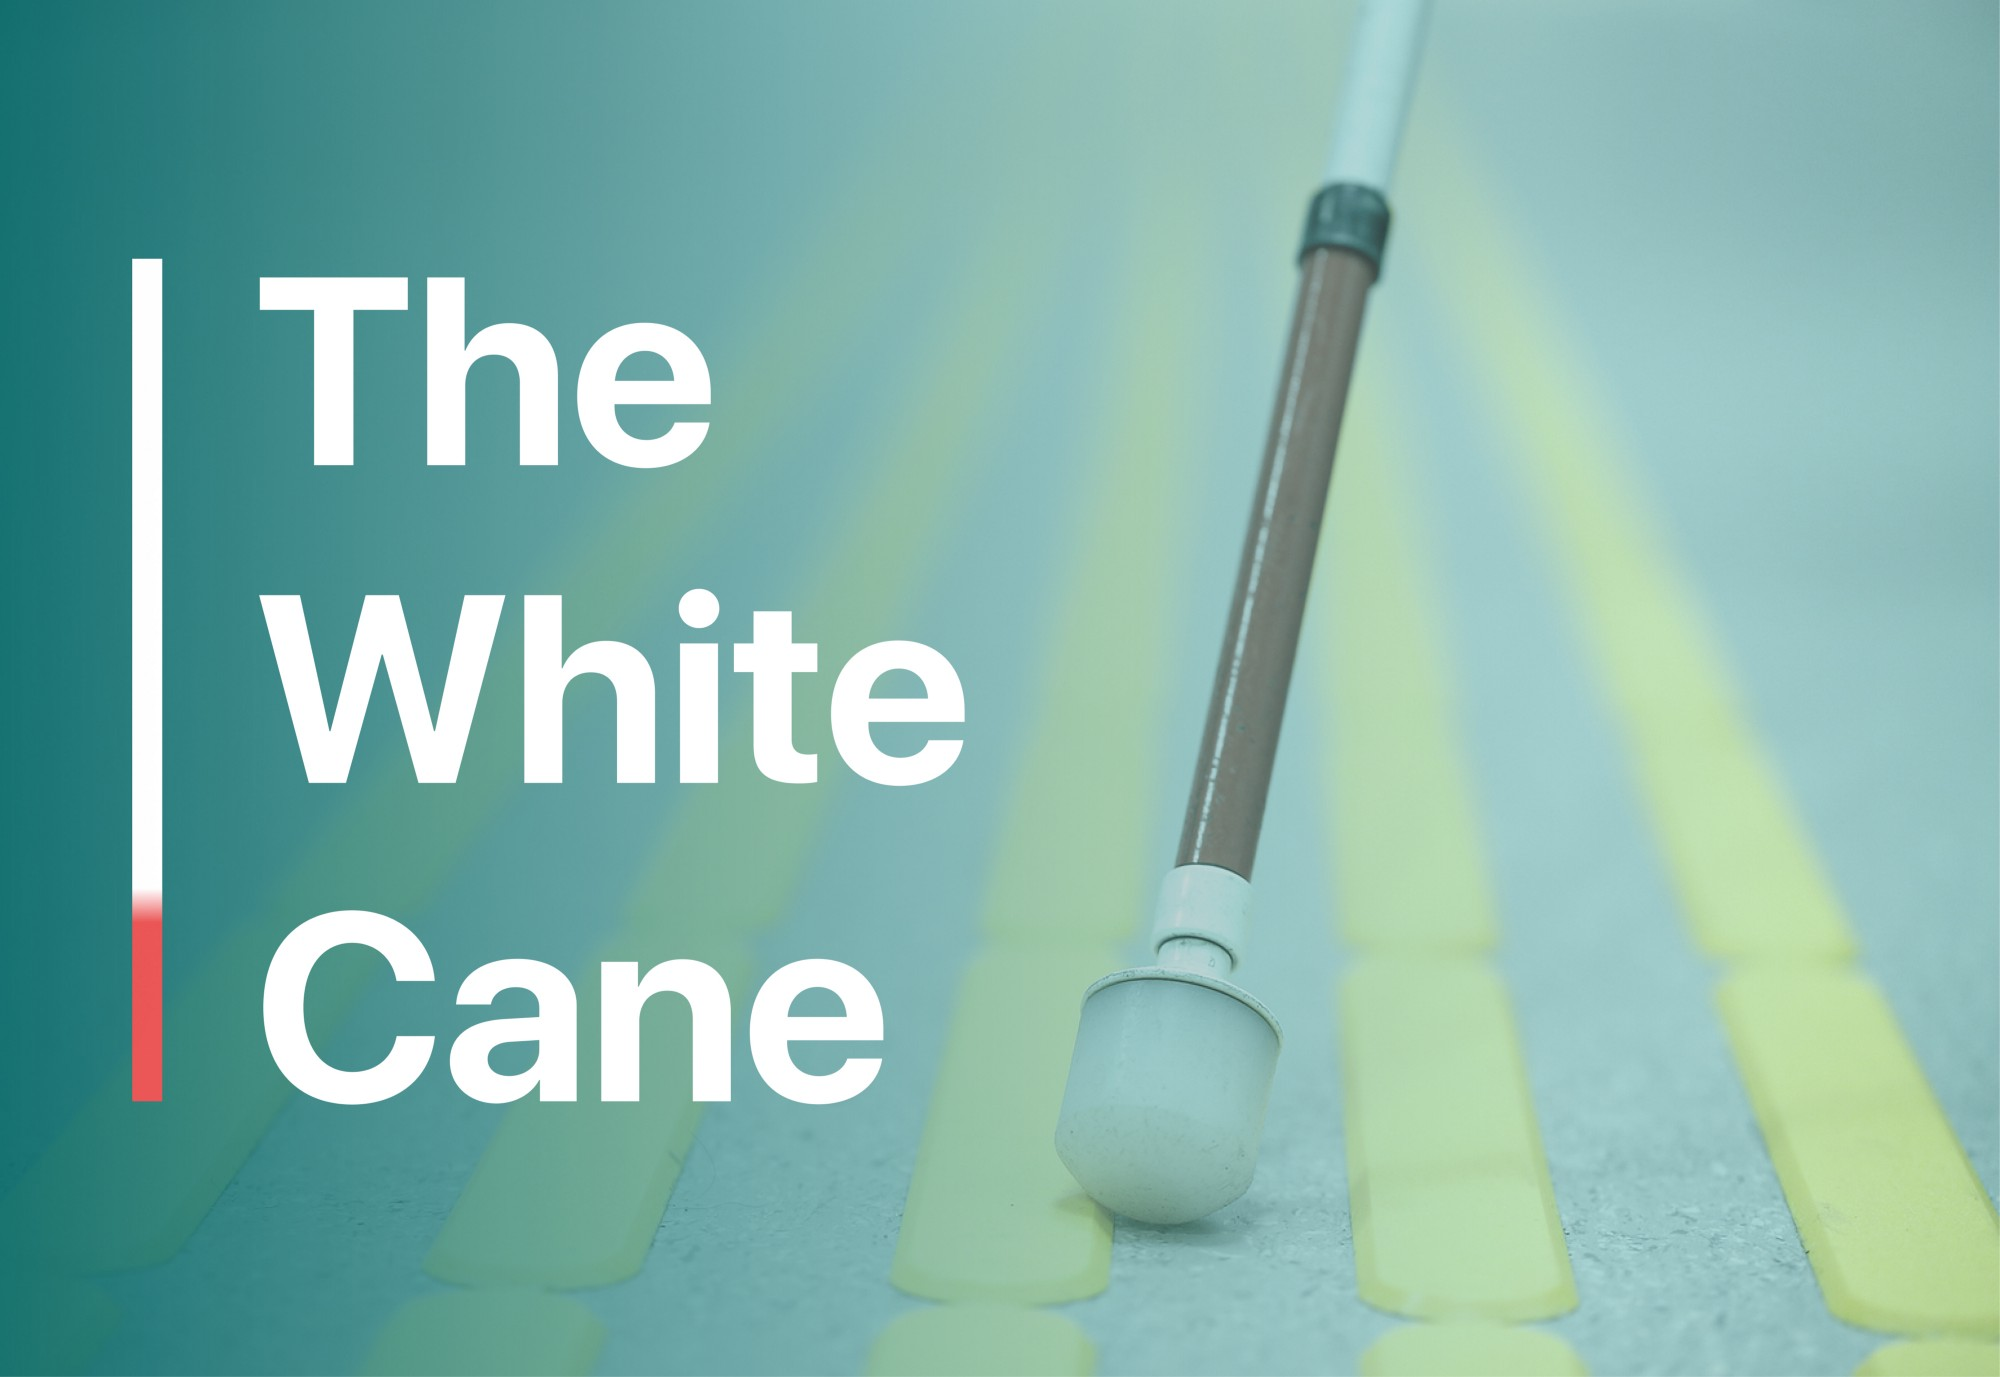 A close up of a white cane with the words 'The White Cane' on the side